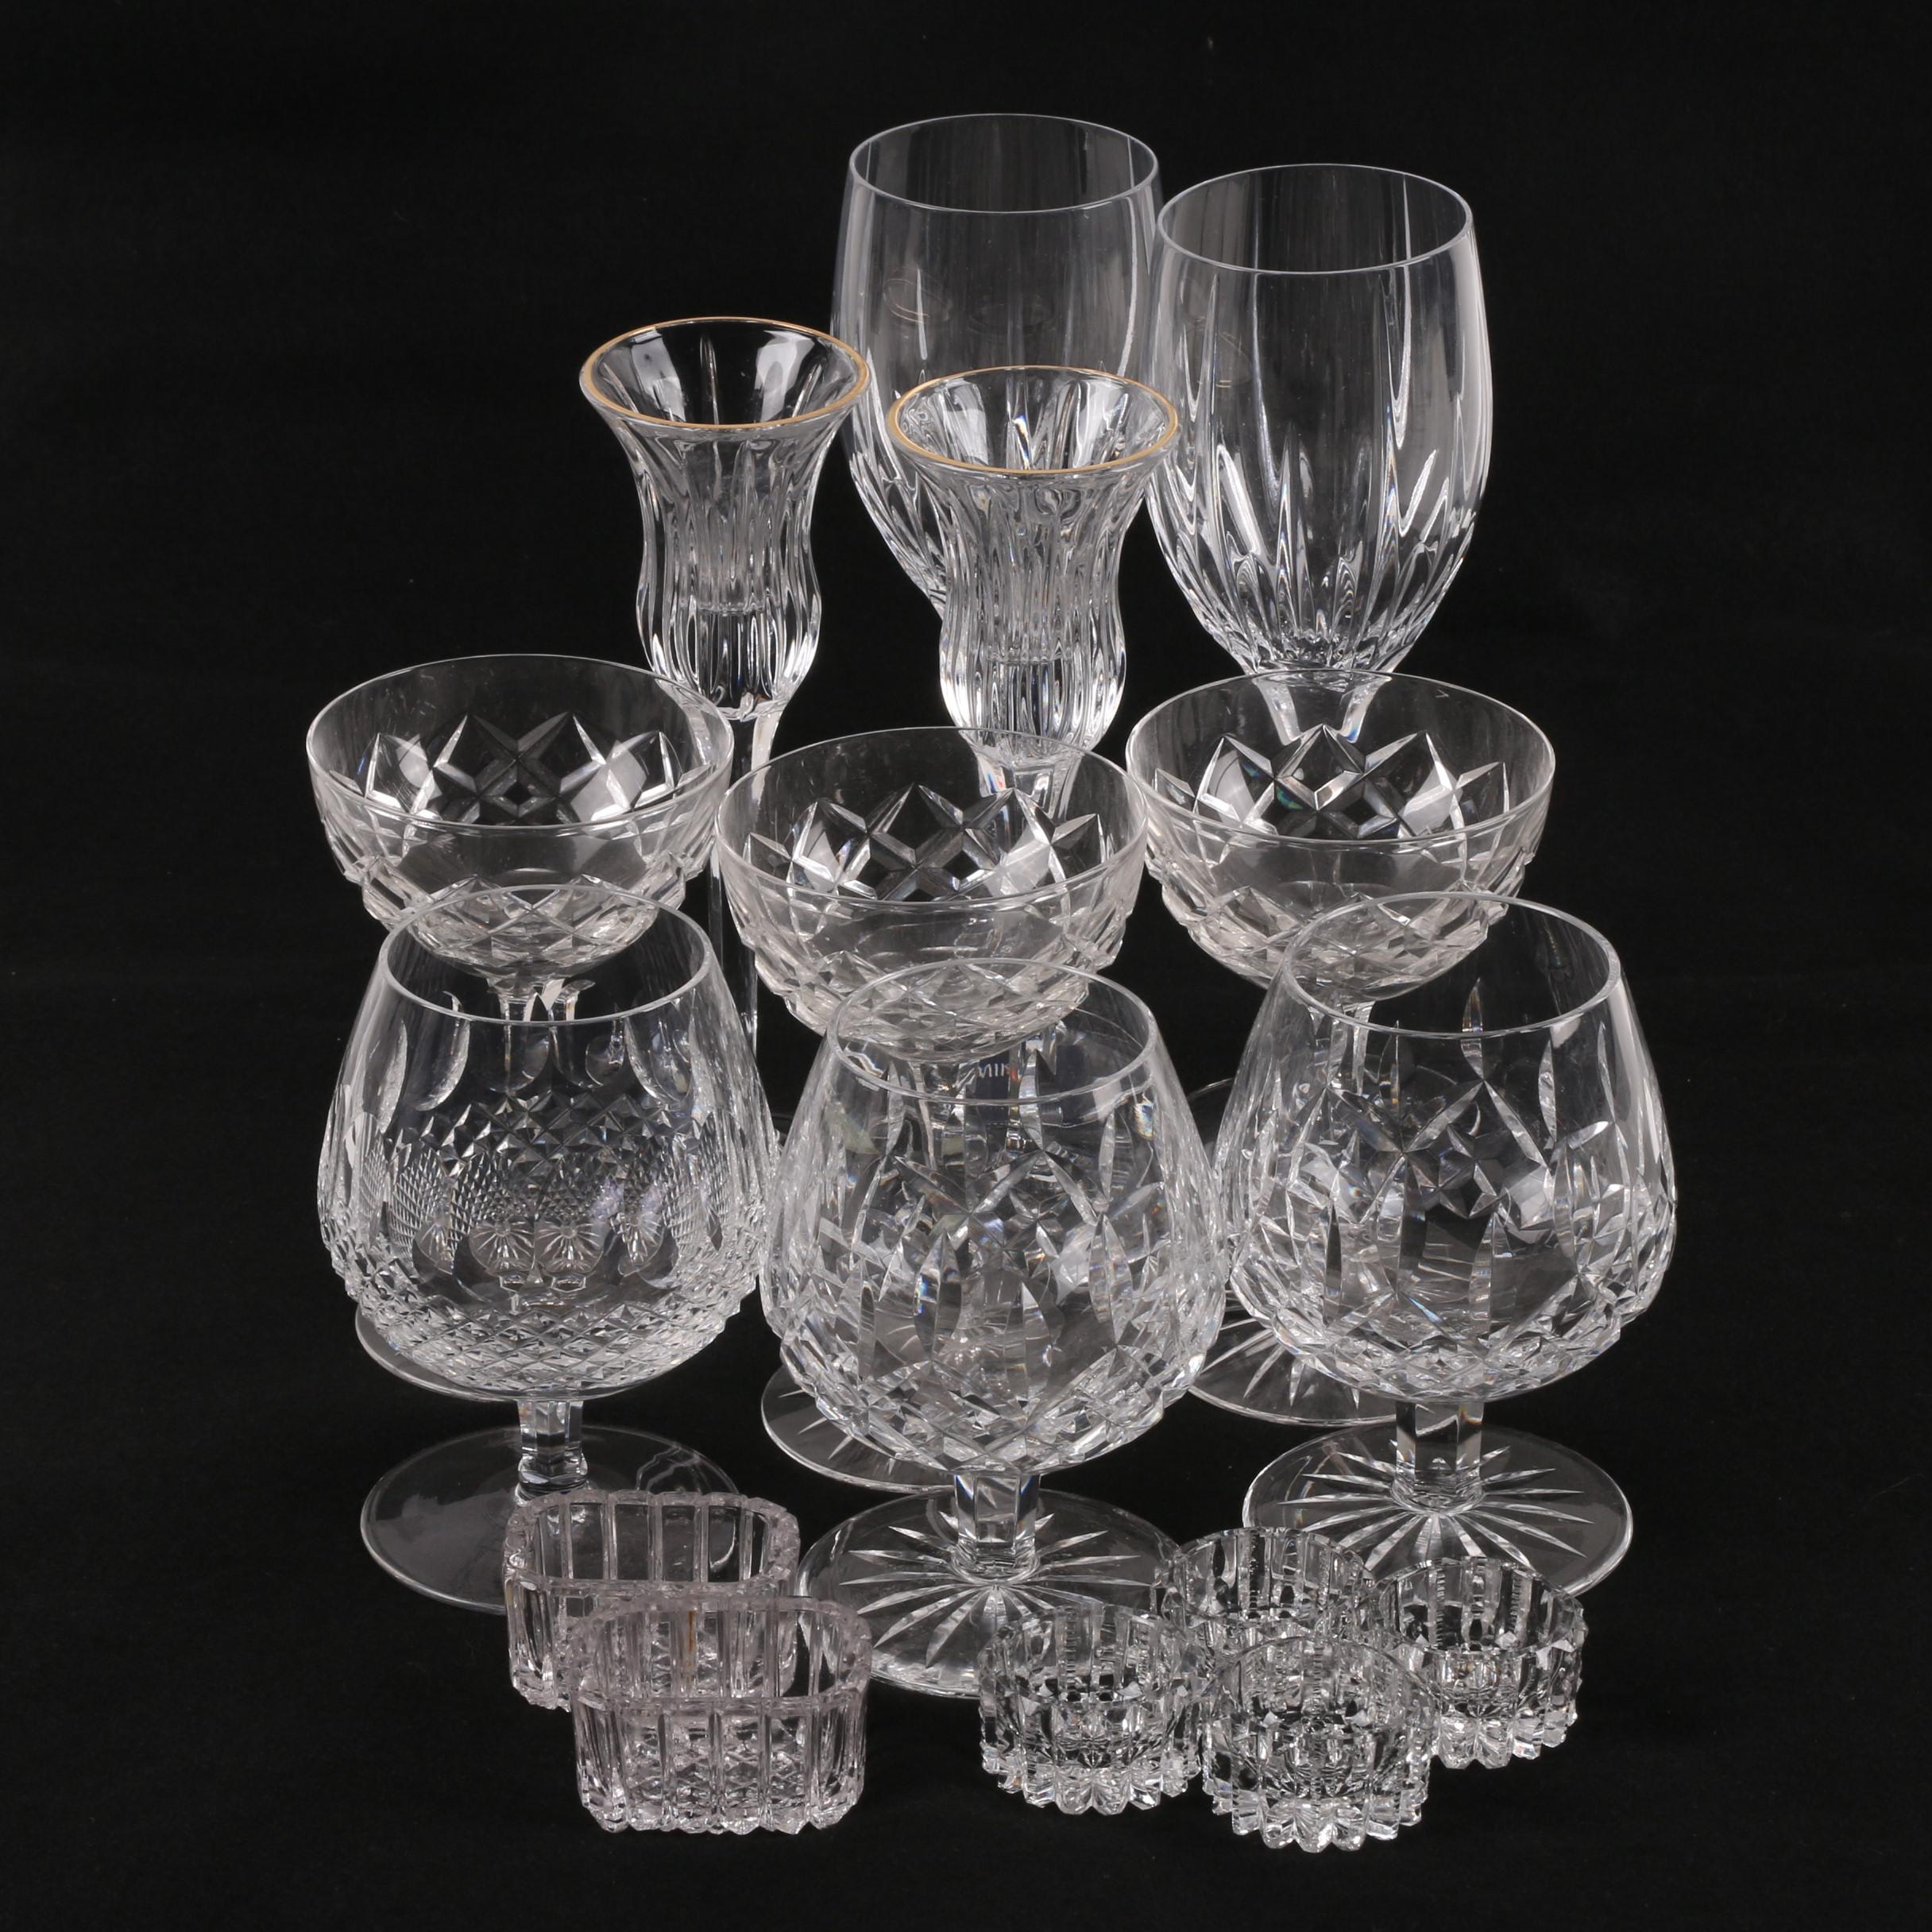 Waterford Crystal Brandy Snifters with Mikasa Crystal Stemware and Salt Cellars